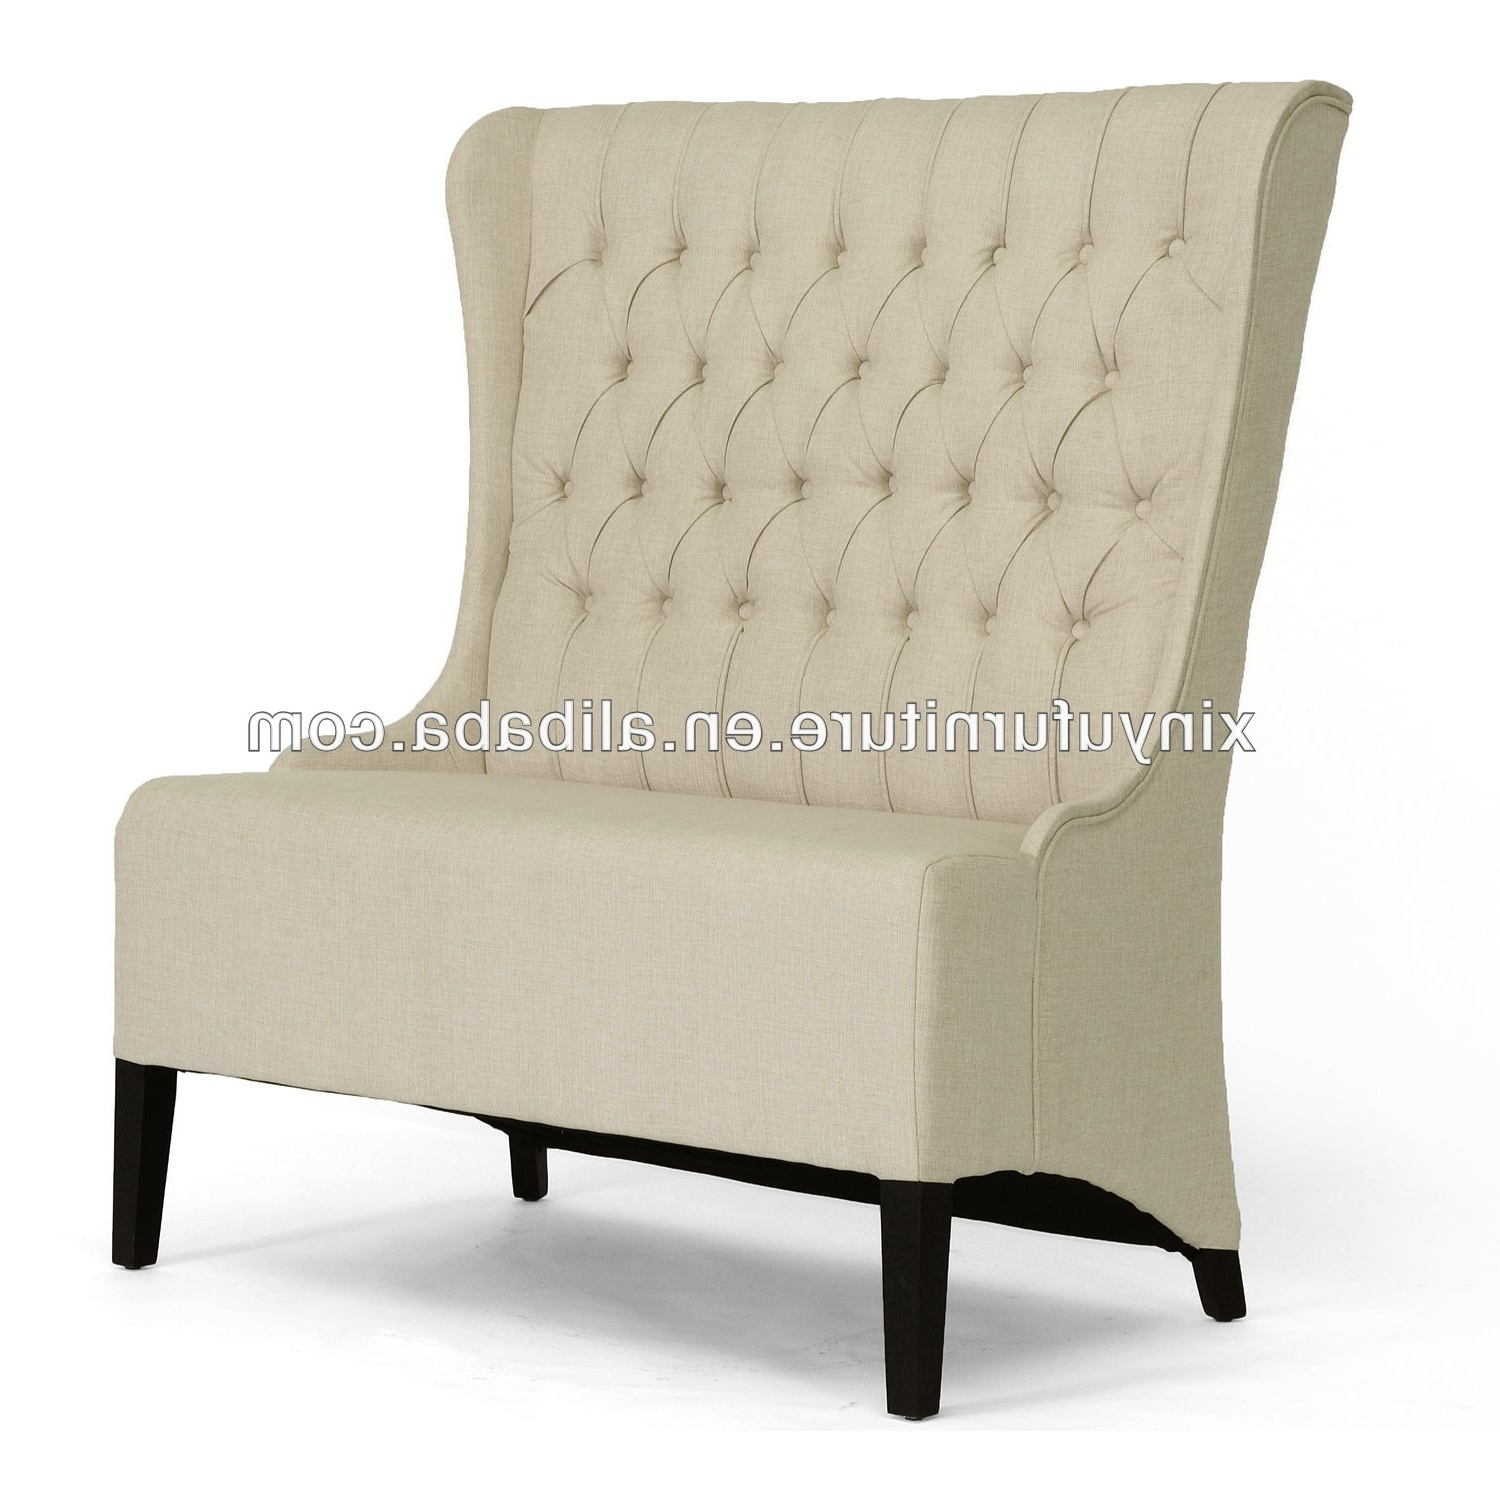 Modern White High Back Loveseat Furniture, Modern White High Back Throughout Recent High Back Sofas And Chairs (View 15 of 15)